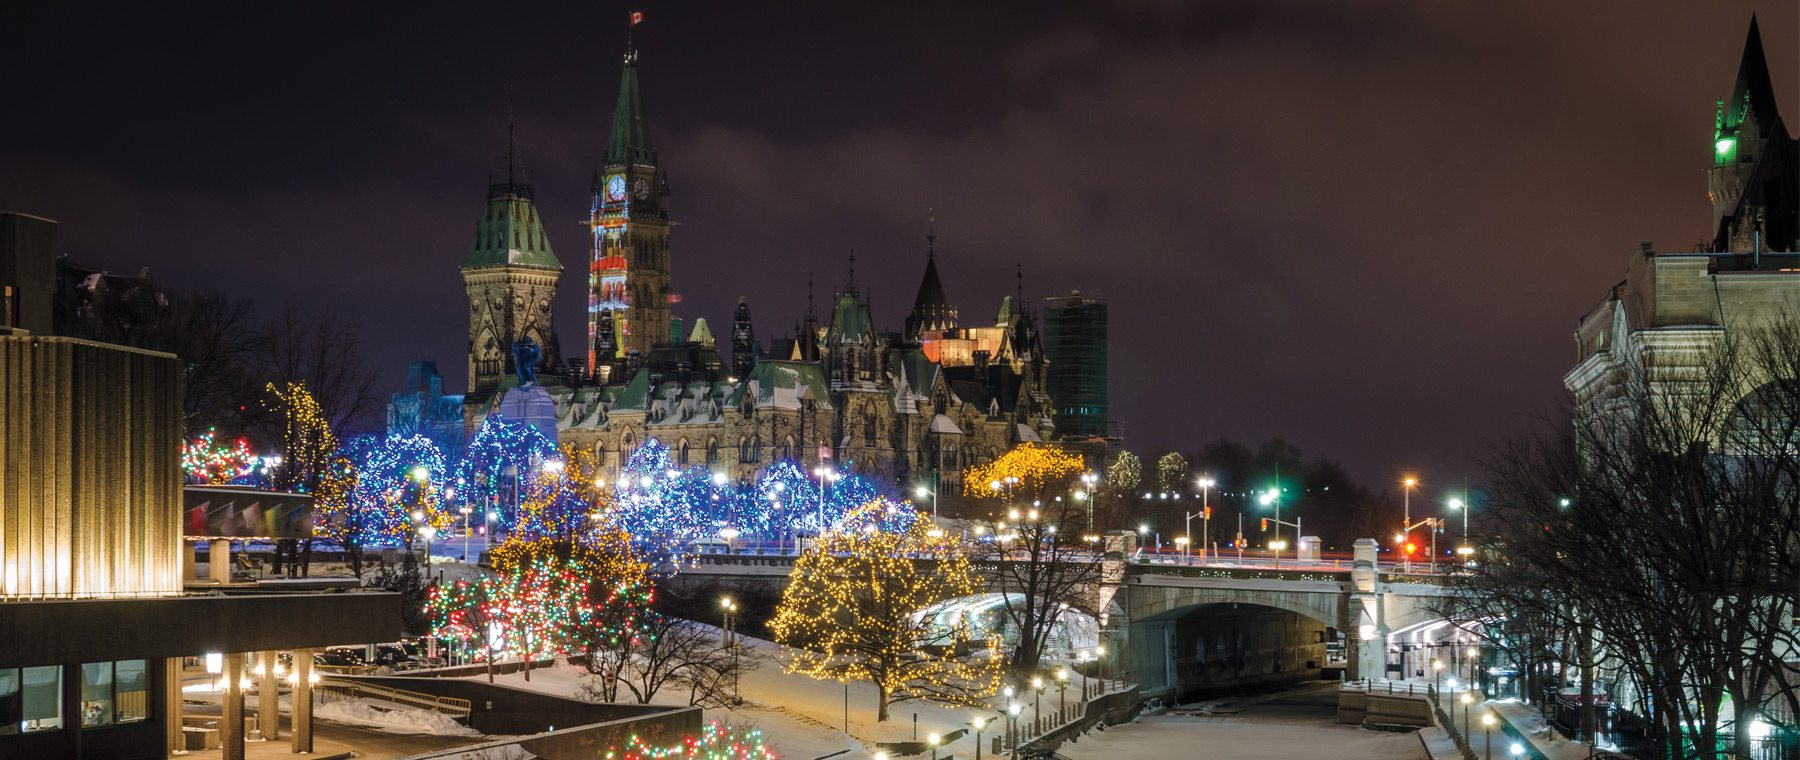 Alight at night! On the Hill or onstage, holiday shows that brighten the season